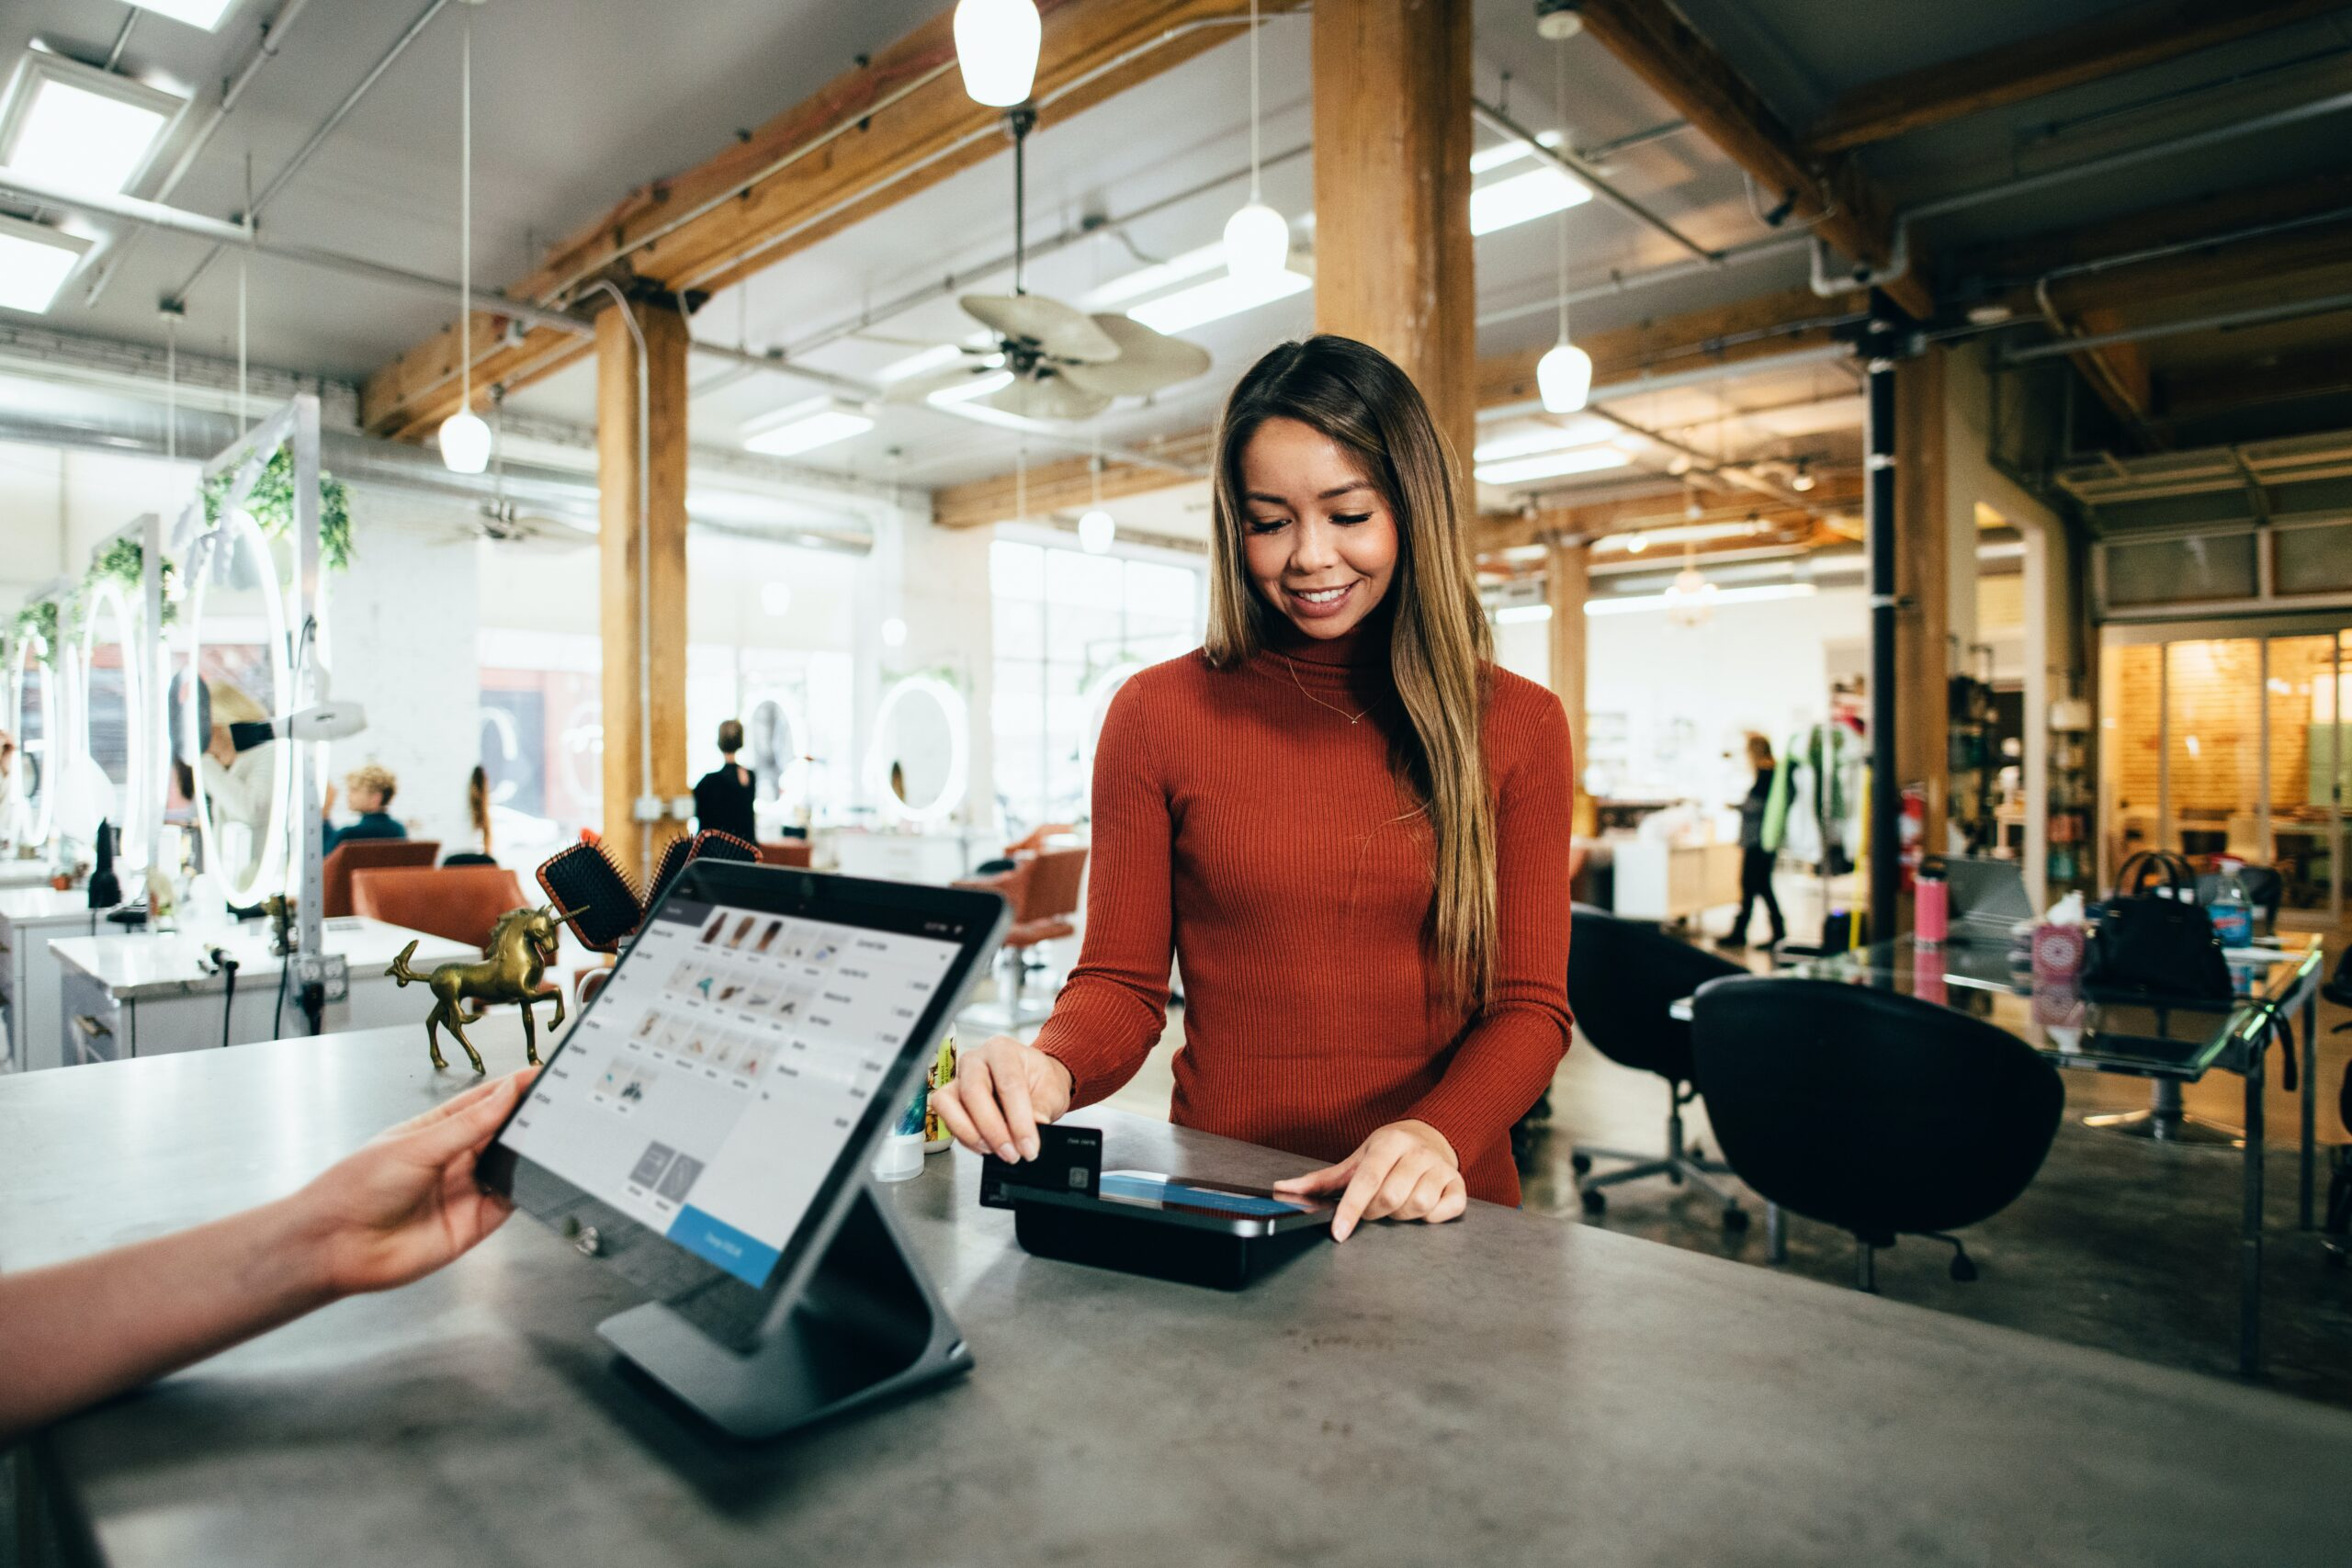 Technology's role in attracting customers back to the high street